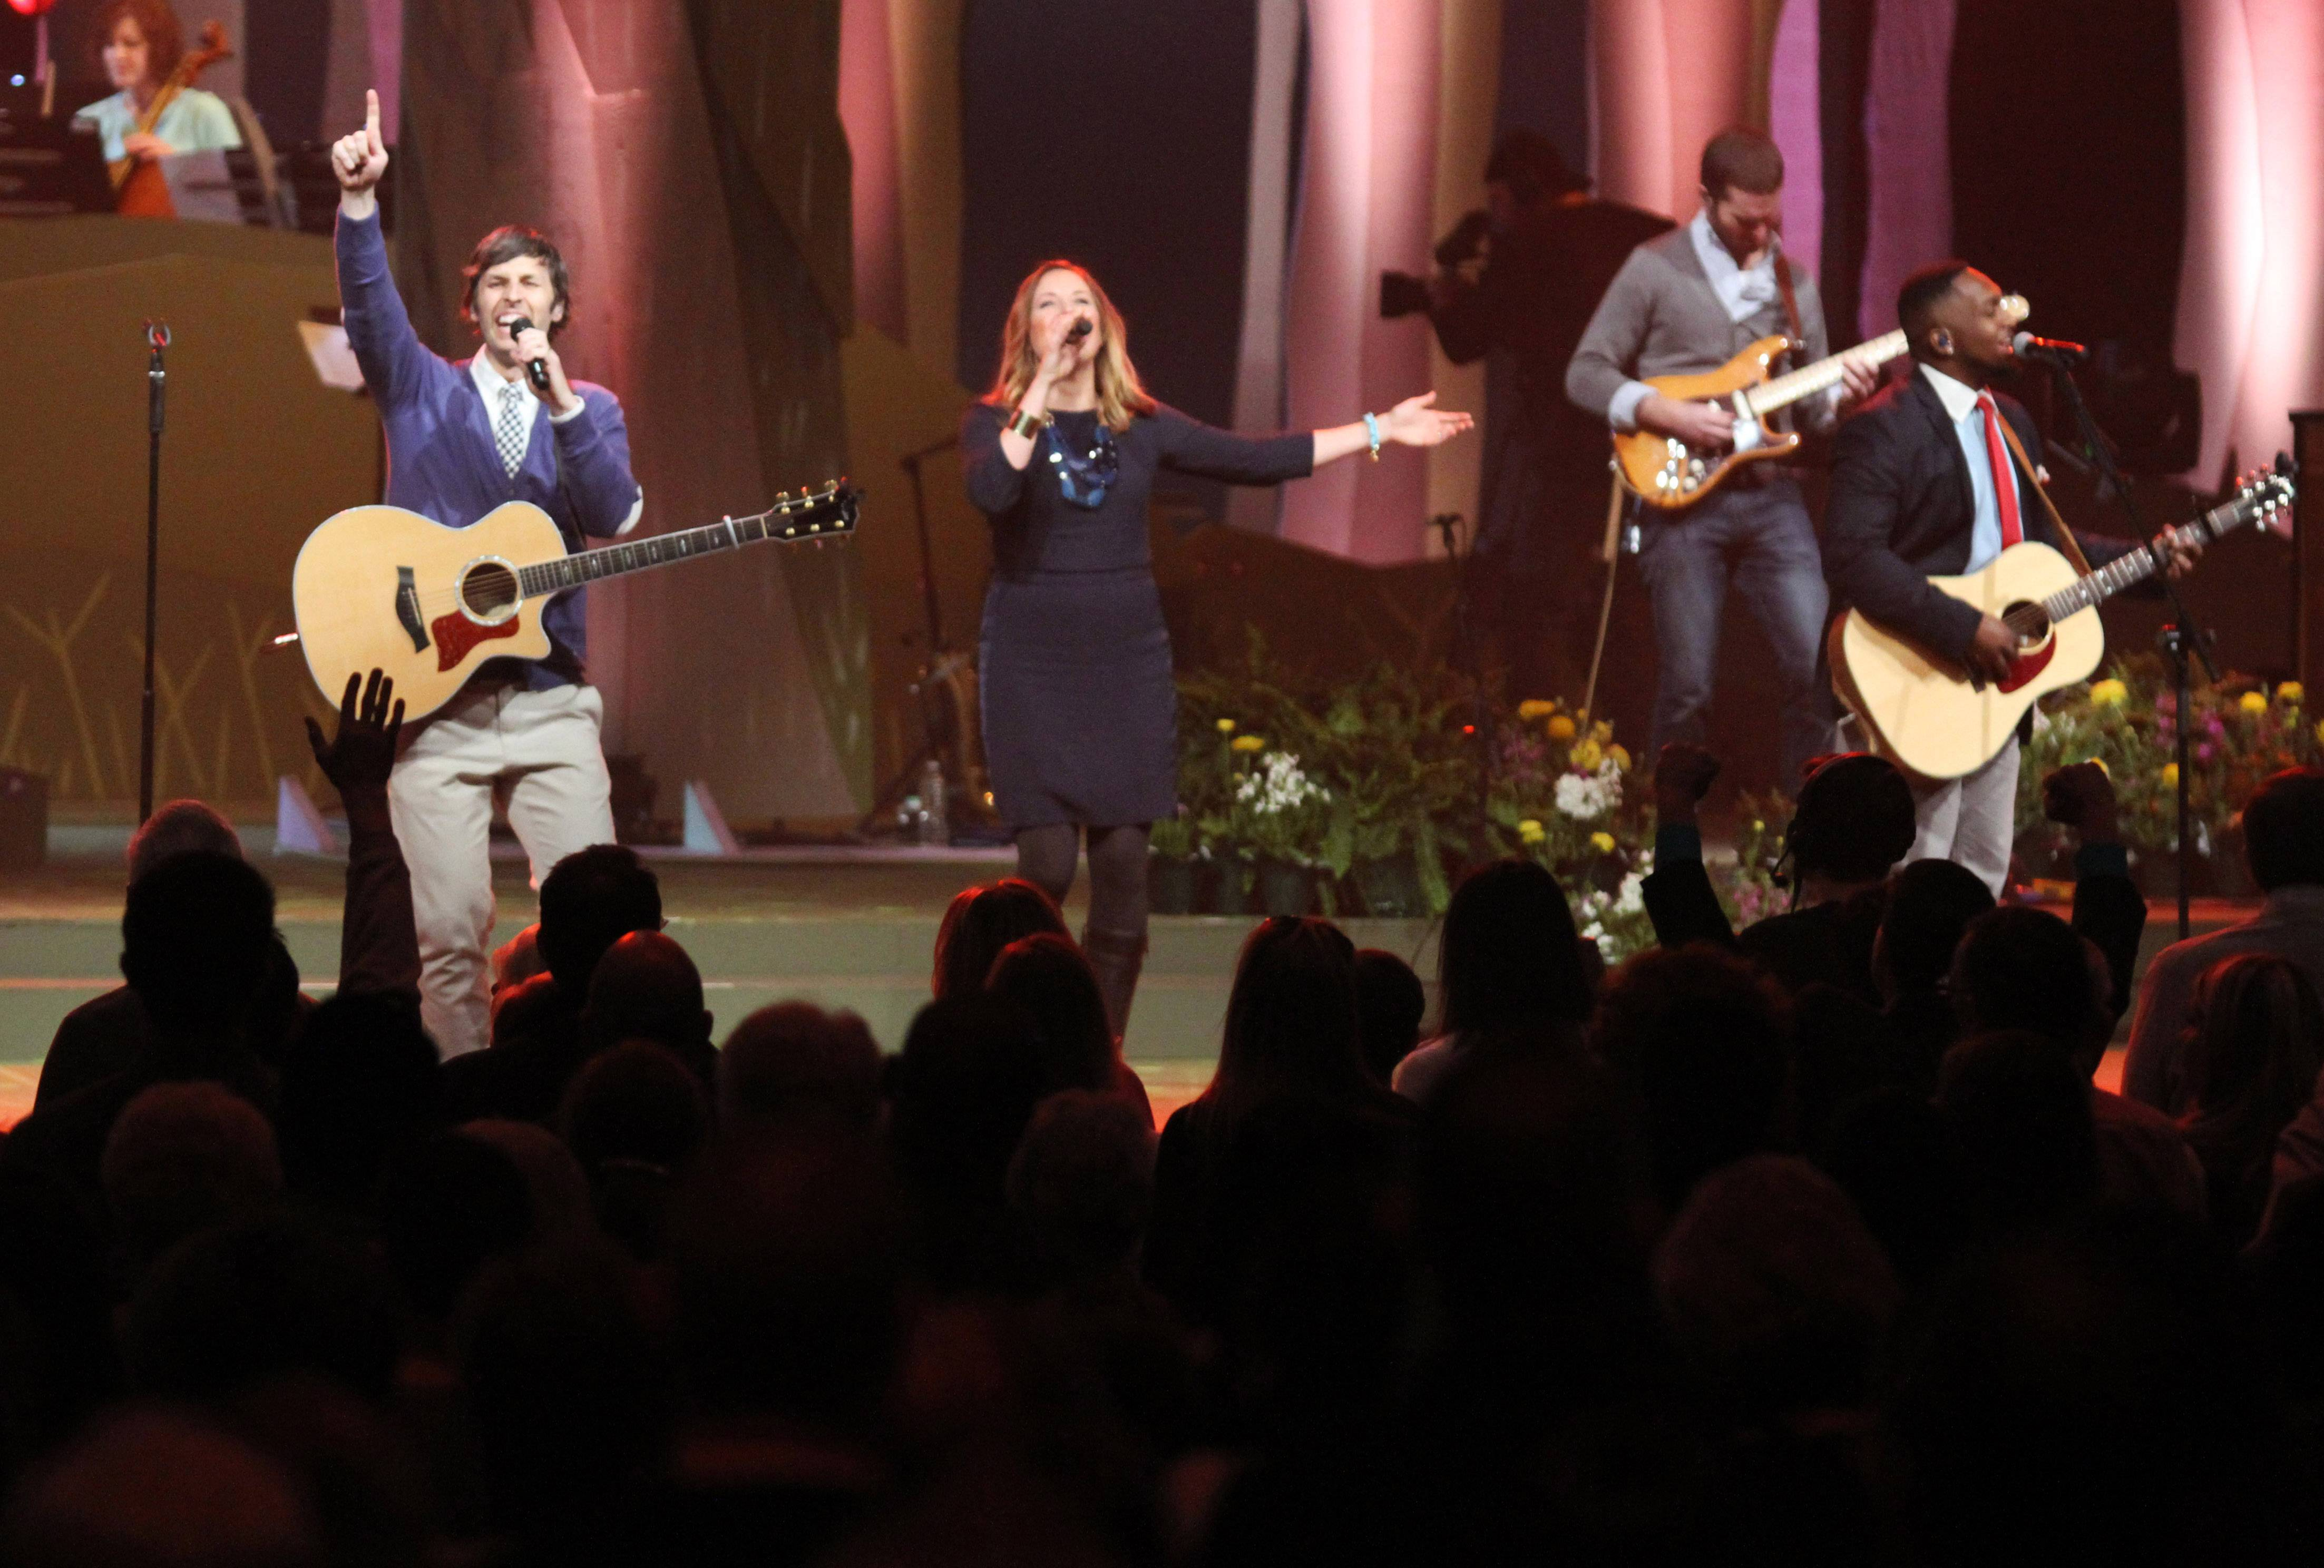 Worship leader Matt Lundgren, left, plays guitar as Becky Ykema sings with the church's musicians during the start of Easter services at Willow Creek Community Church on Saturday in South Barrington.